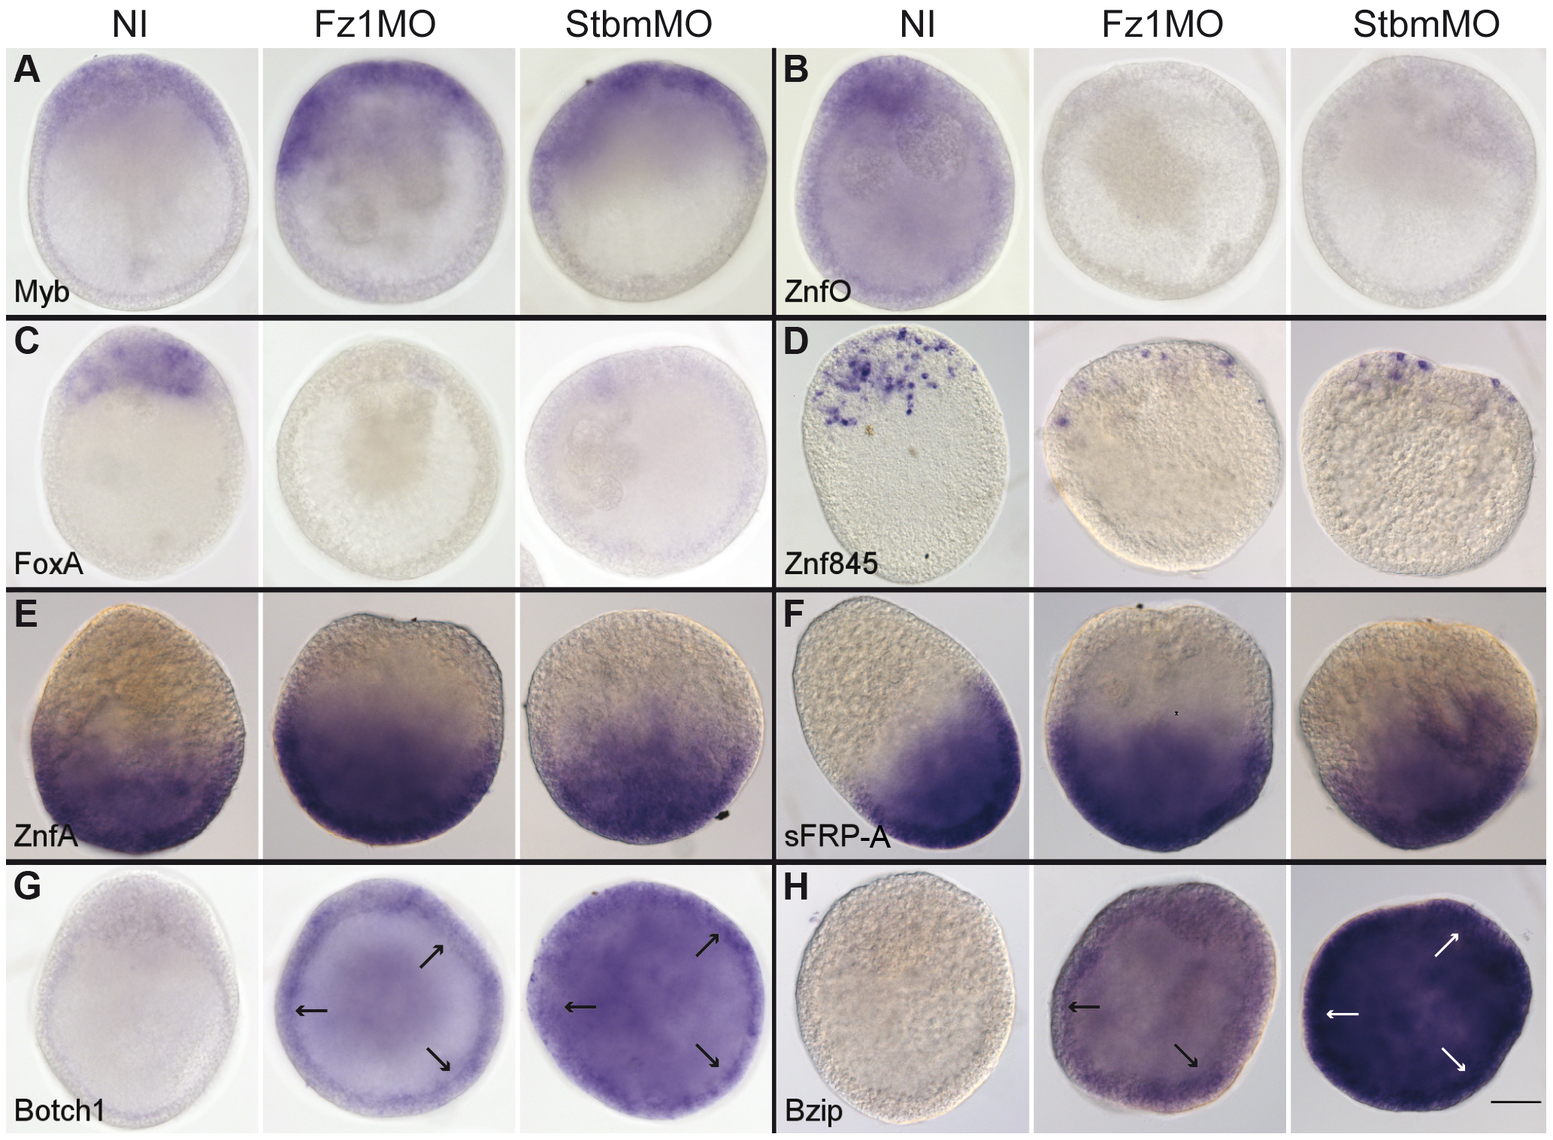 Fz1-MO and Stbm-MO have very similar effects on gene expression profiles.